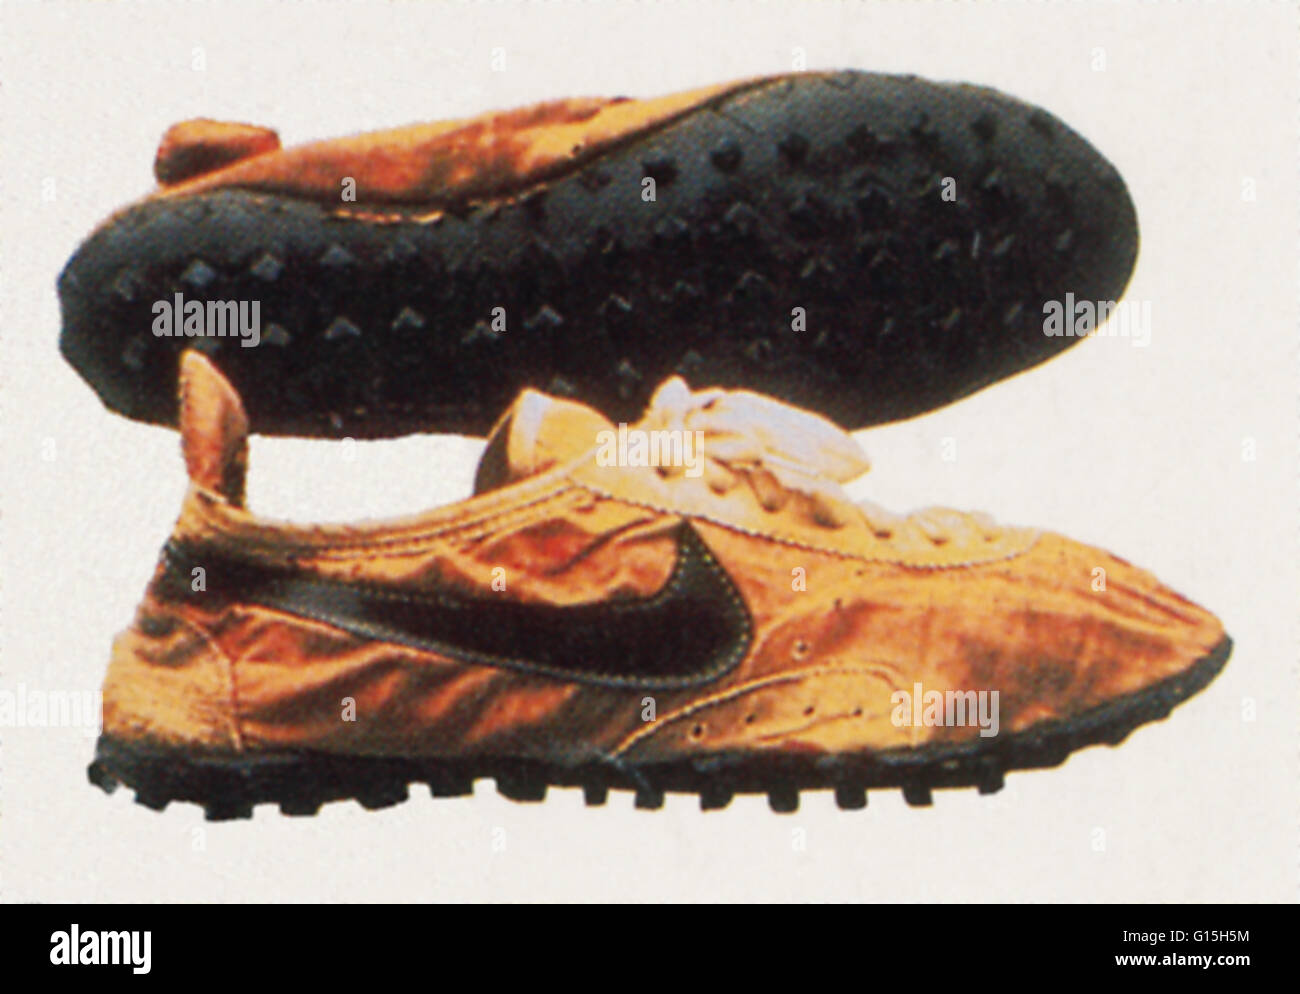 e0d271dcd59dcd Bill Bowerman Stock Photos   Bill Bowerman Stock Images - Alamy